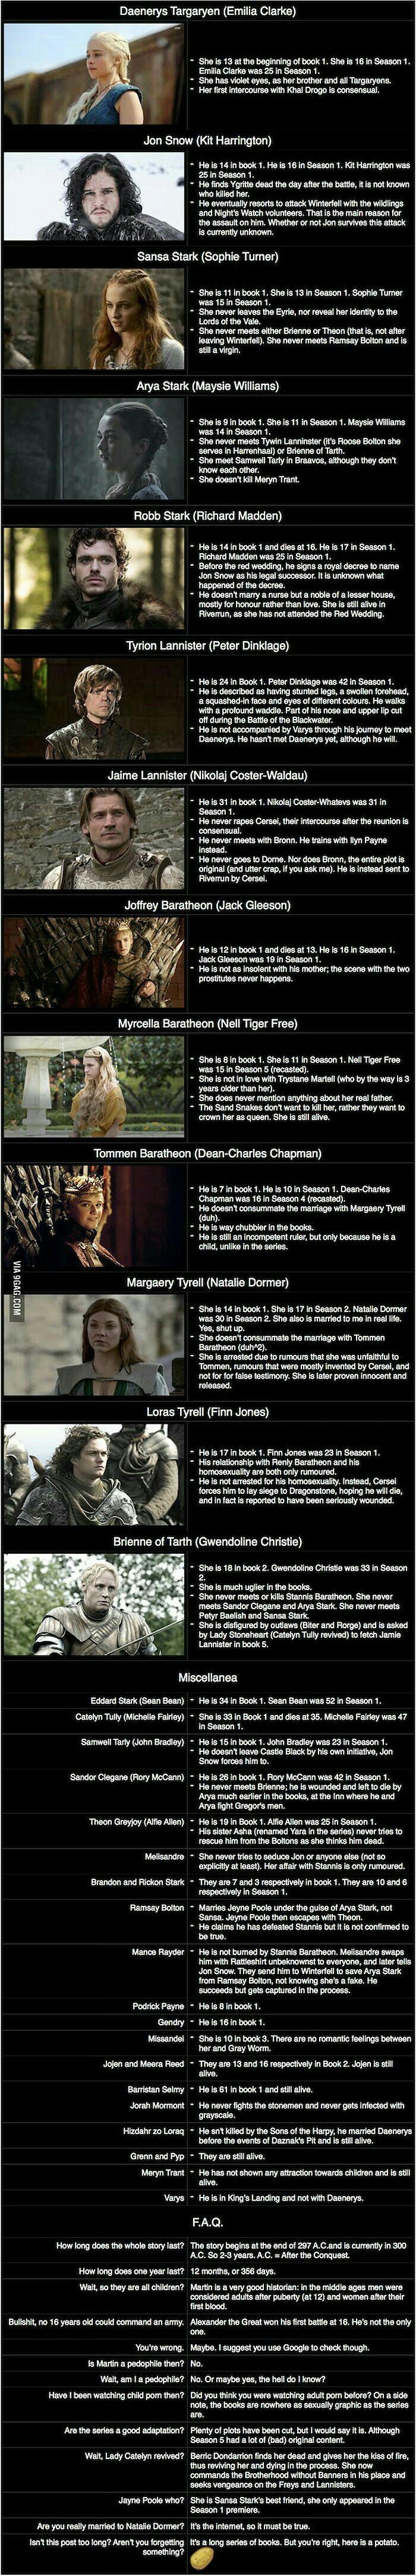 Game of thrones facts.